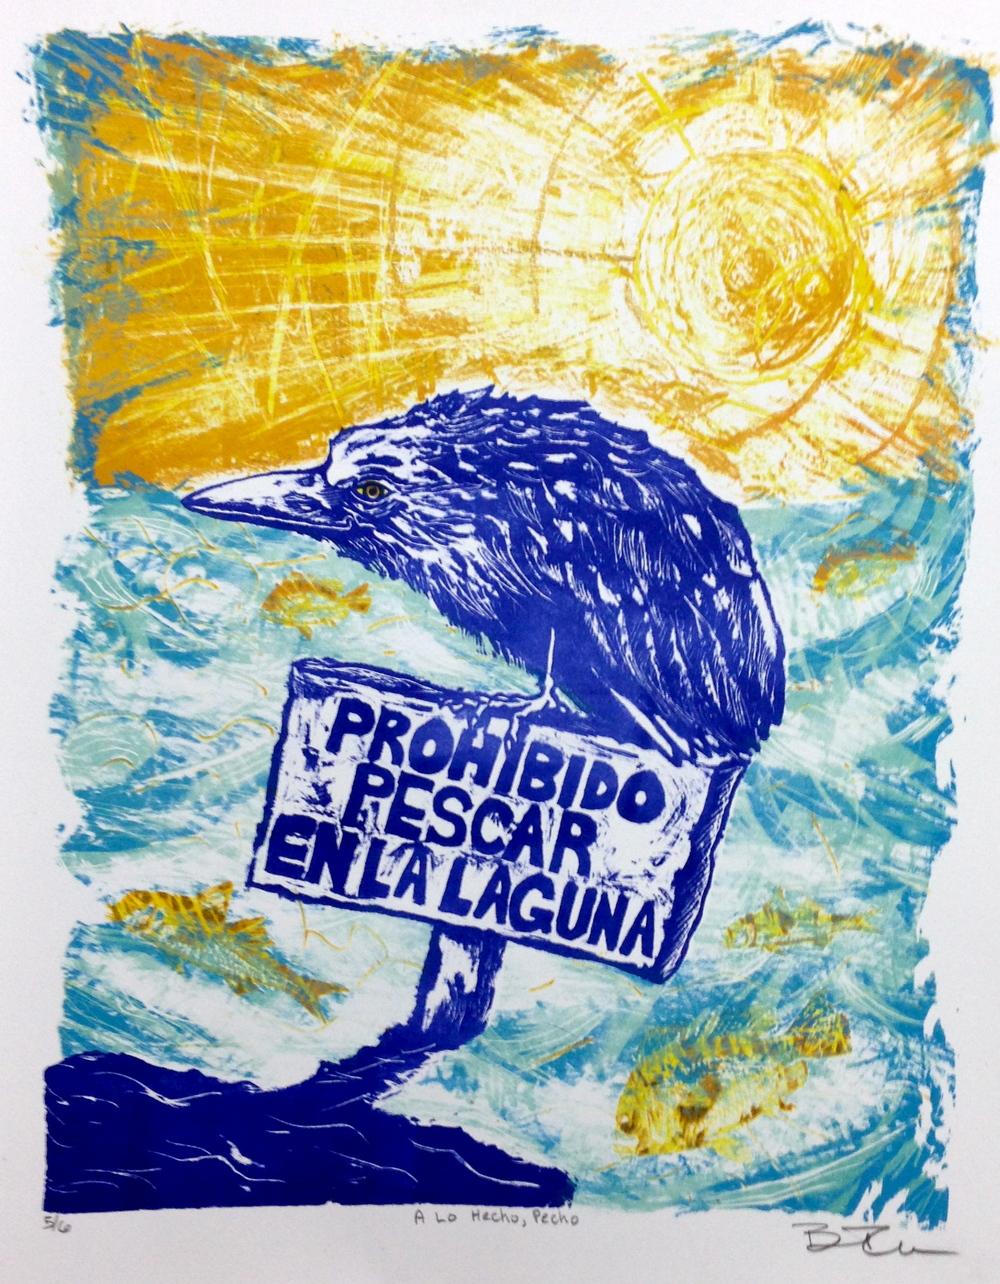 A Lo Hecho, Pecho (prints available for purchase)